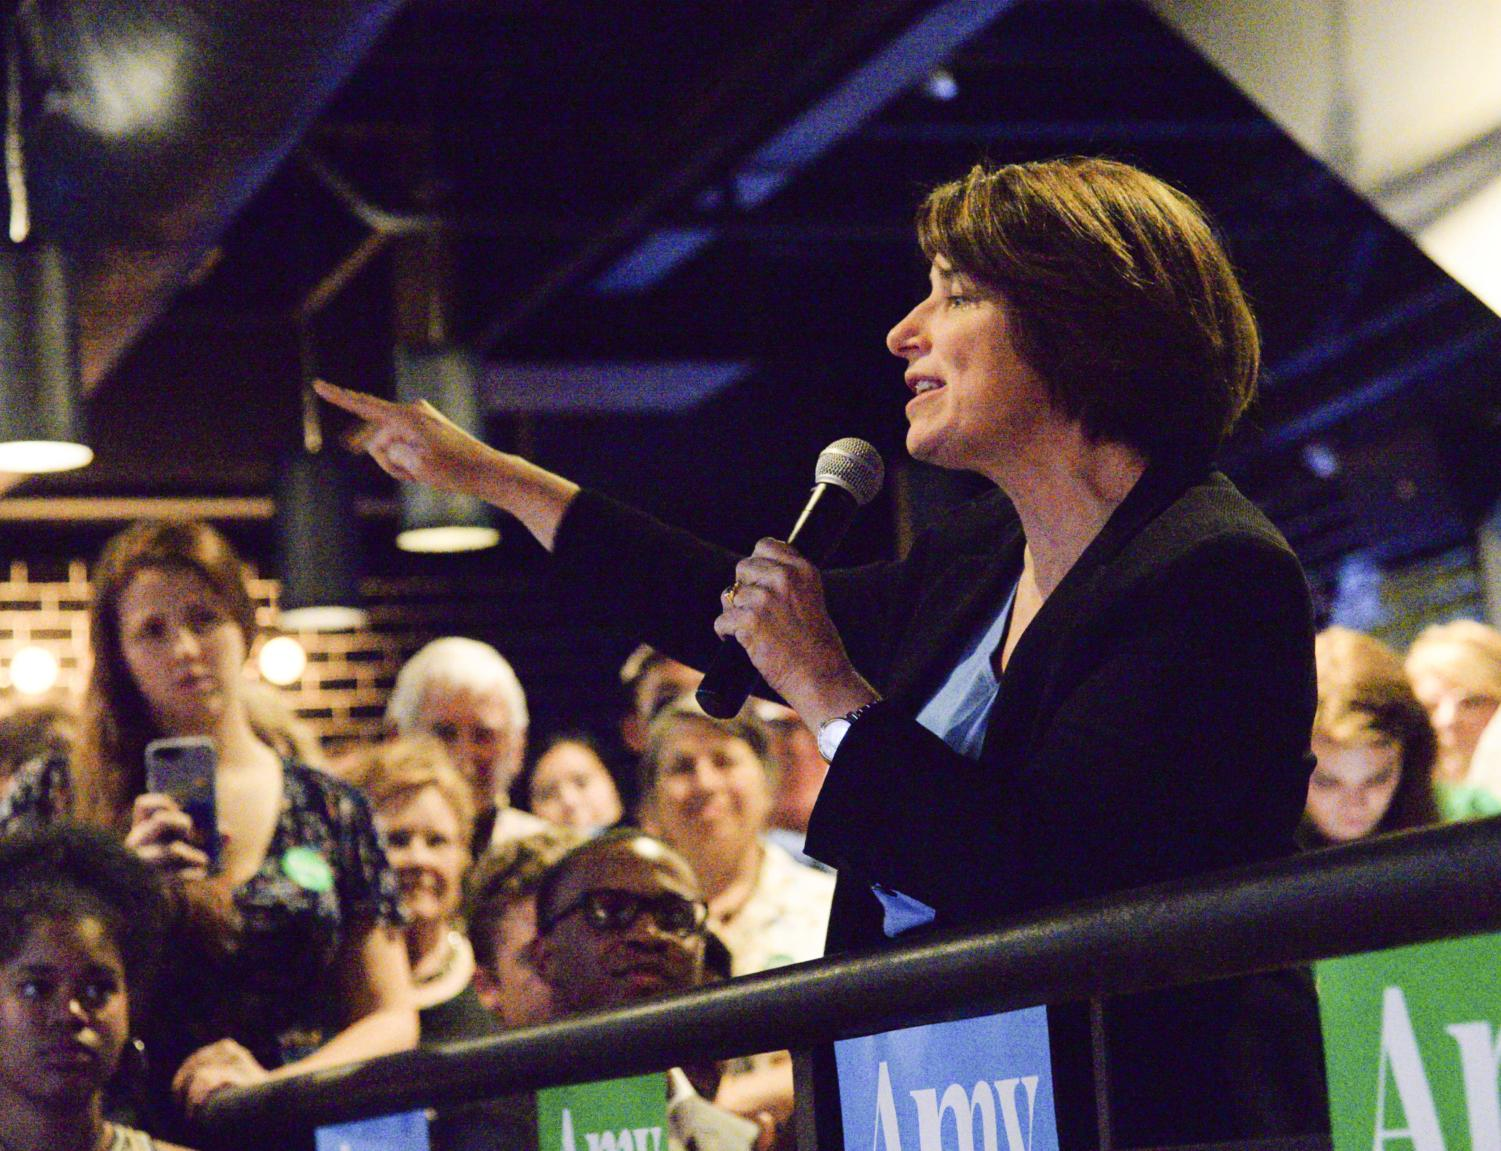 Presidential hopeful Sen. Amy Klobuchar, D-Minn., spoke to a full crowd in Stack'd on Wednesday night at an event hosted by Pitt College Democrats.